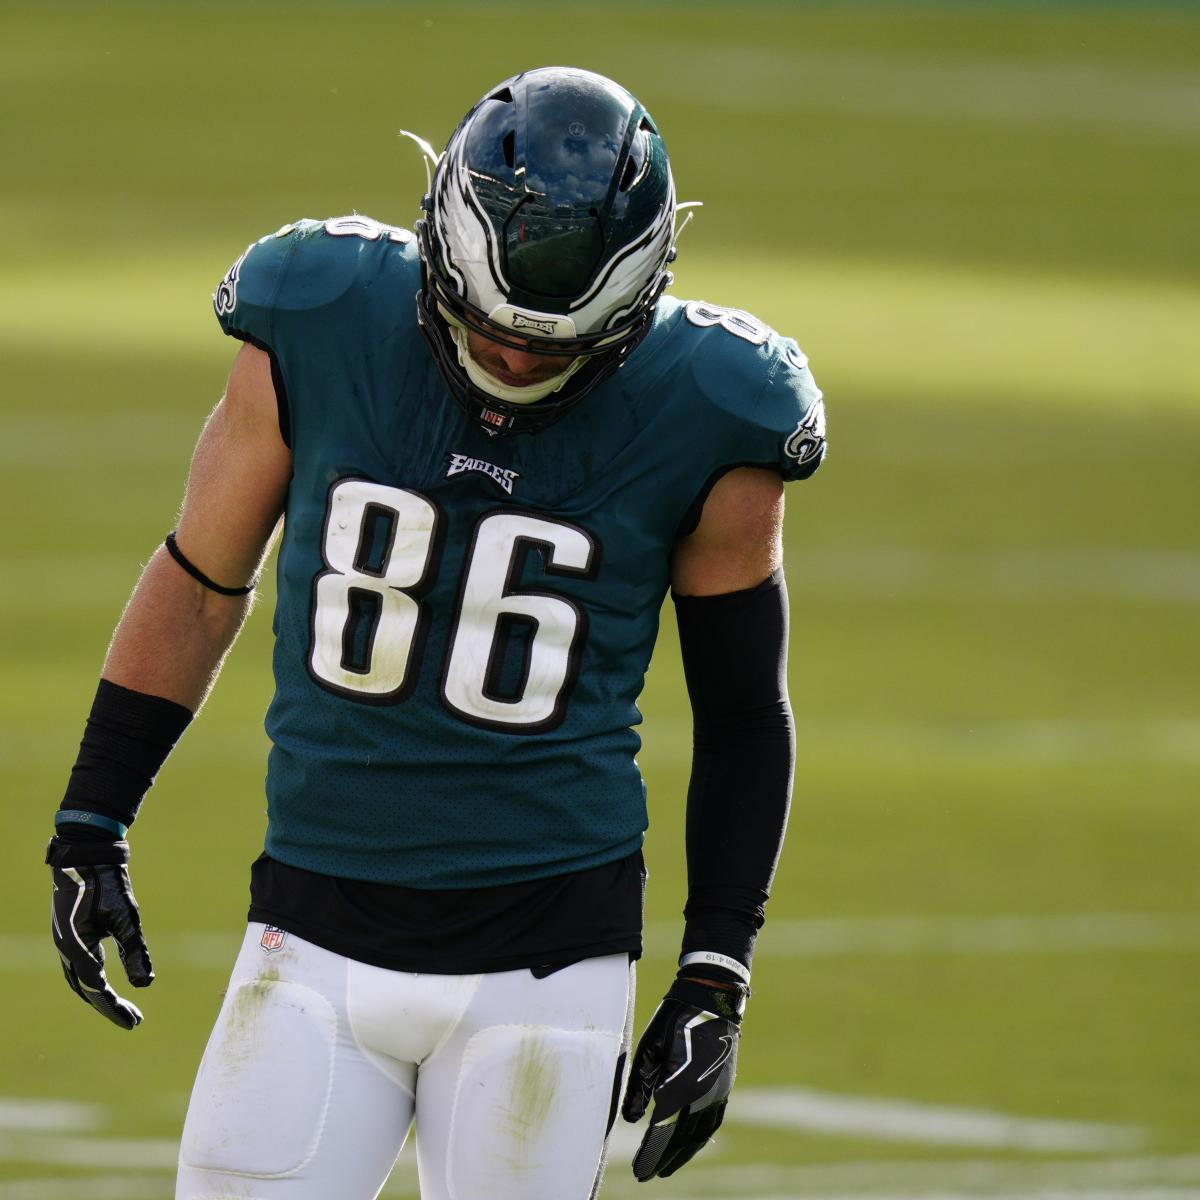 Zach Ertz Trade Rumors: Eagles Were Willing to Deal TE Before Ankle Injury